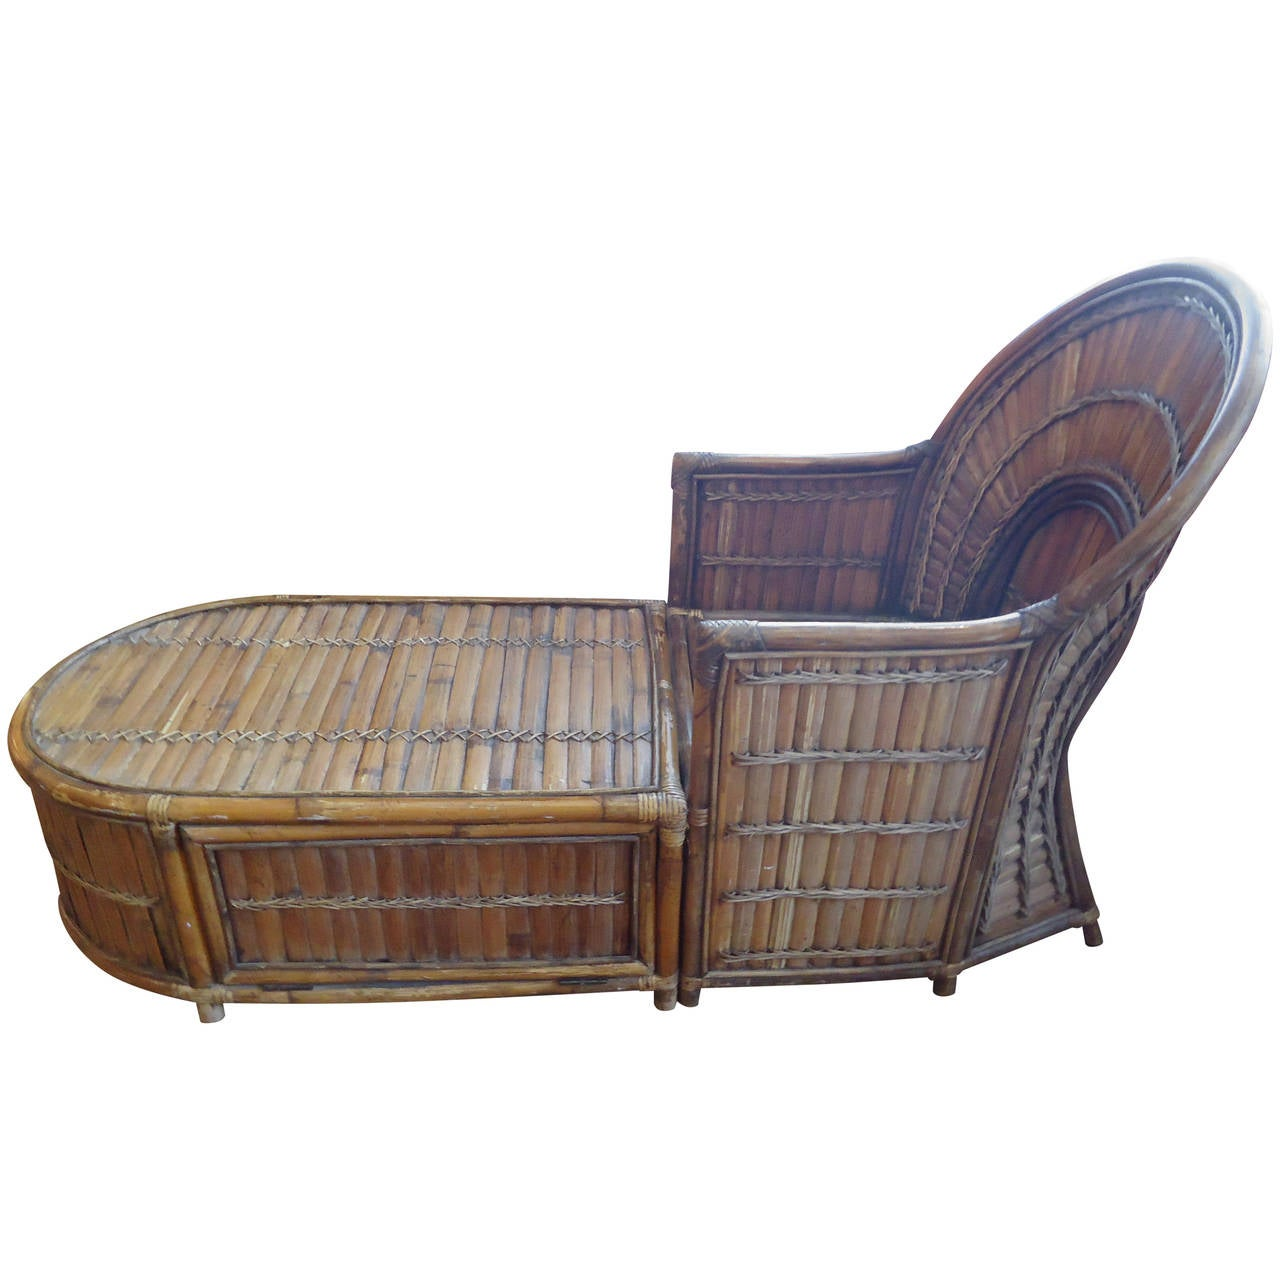 rare bamboo art deco style chaise lounge at 1stdibs. Black Bedroom Furniture Sets. Home Design Ideas